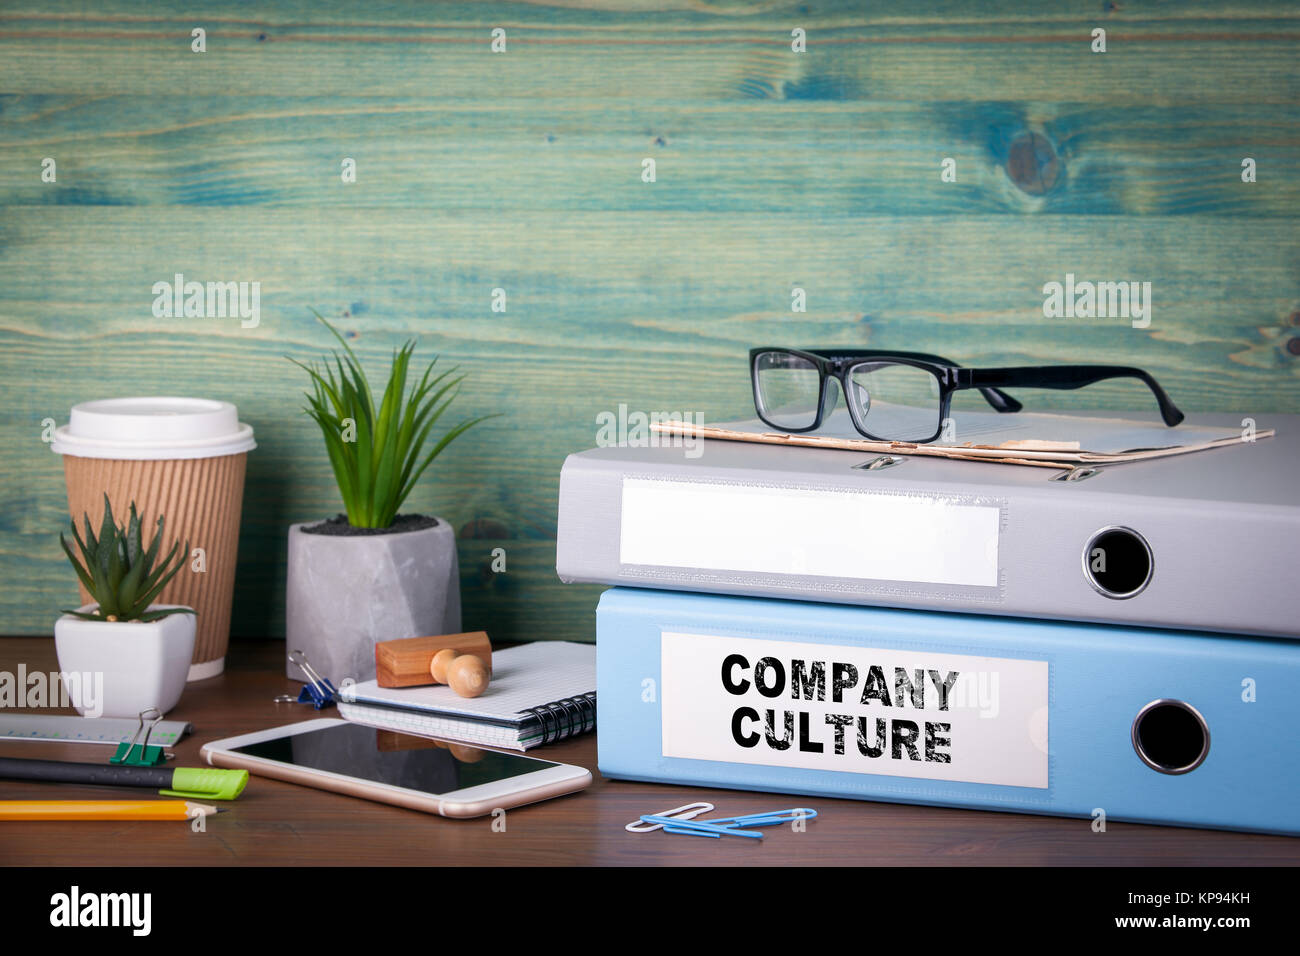 Company Culture. Binders on desk in the office. Business background - Stock Image